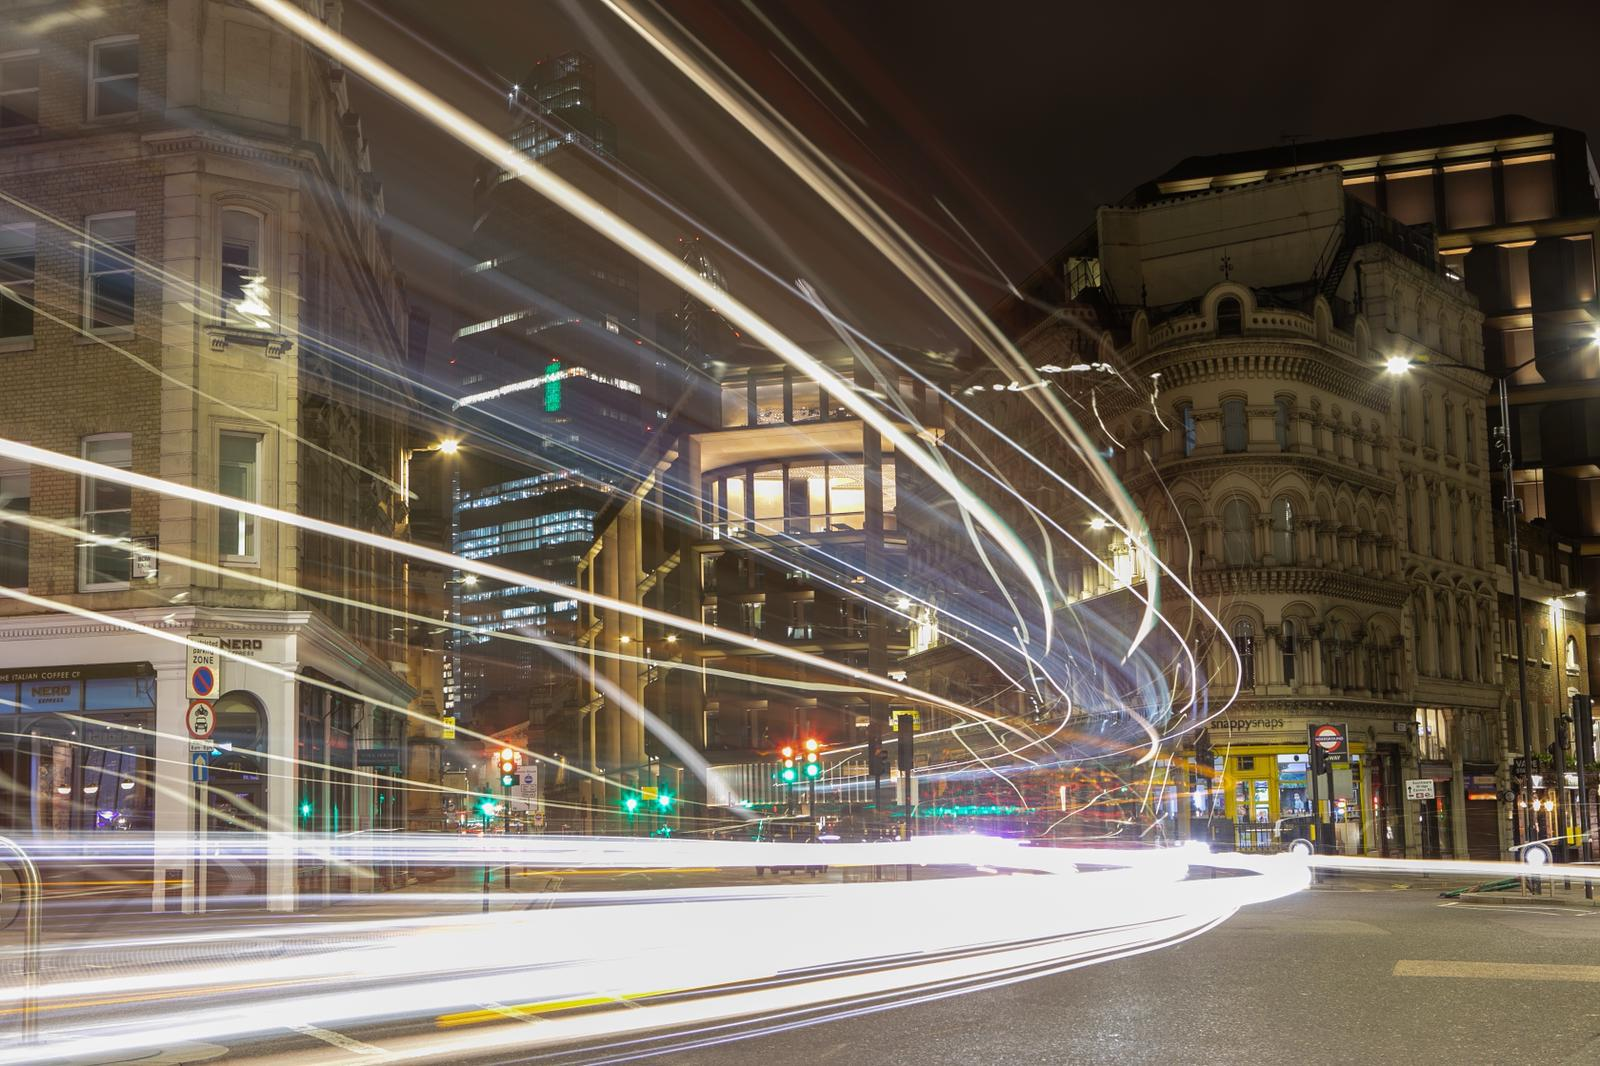 Central London with a long exposure